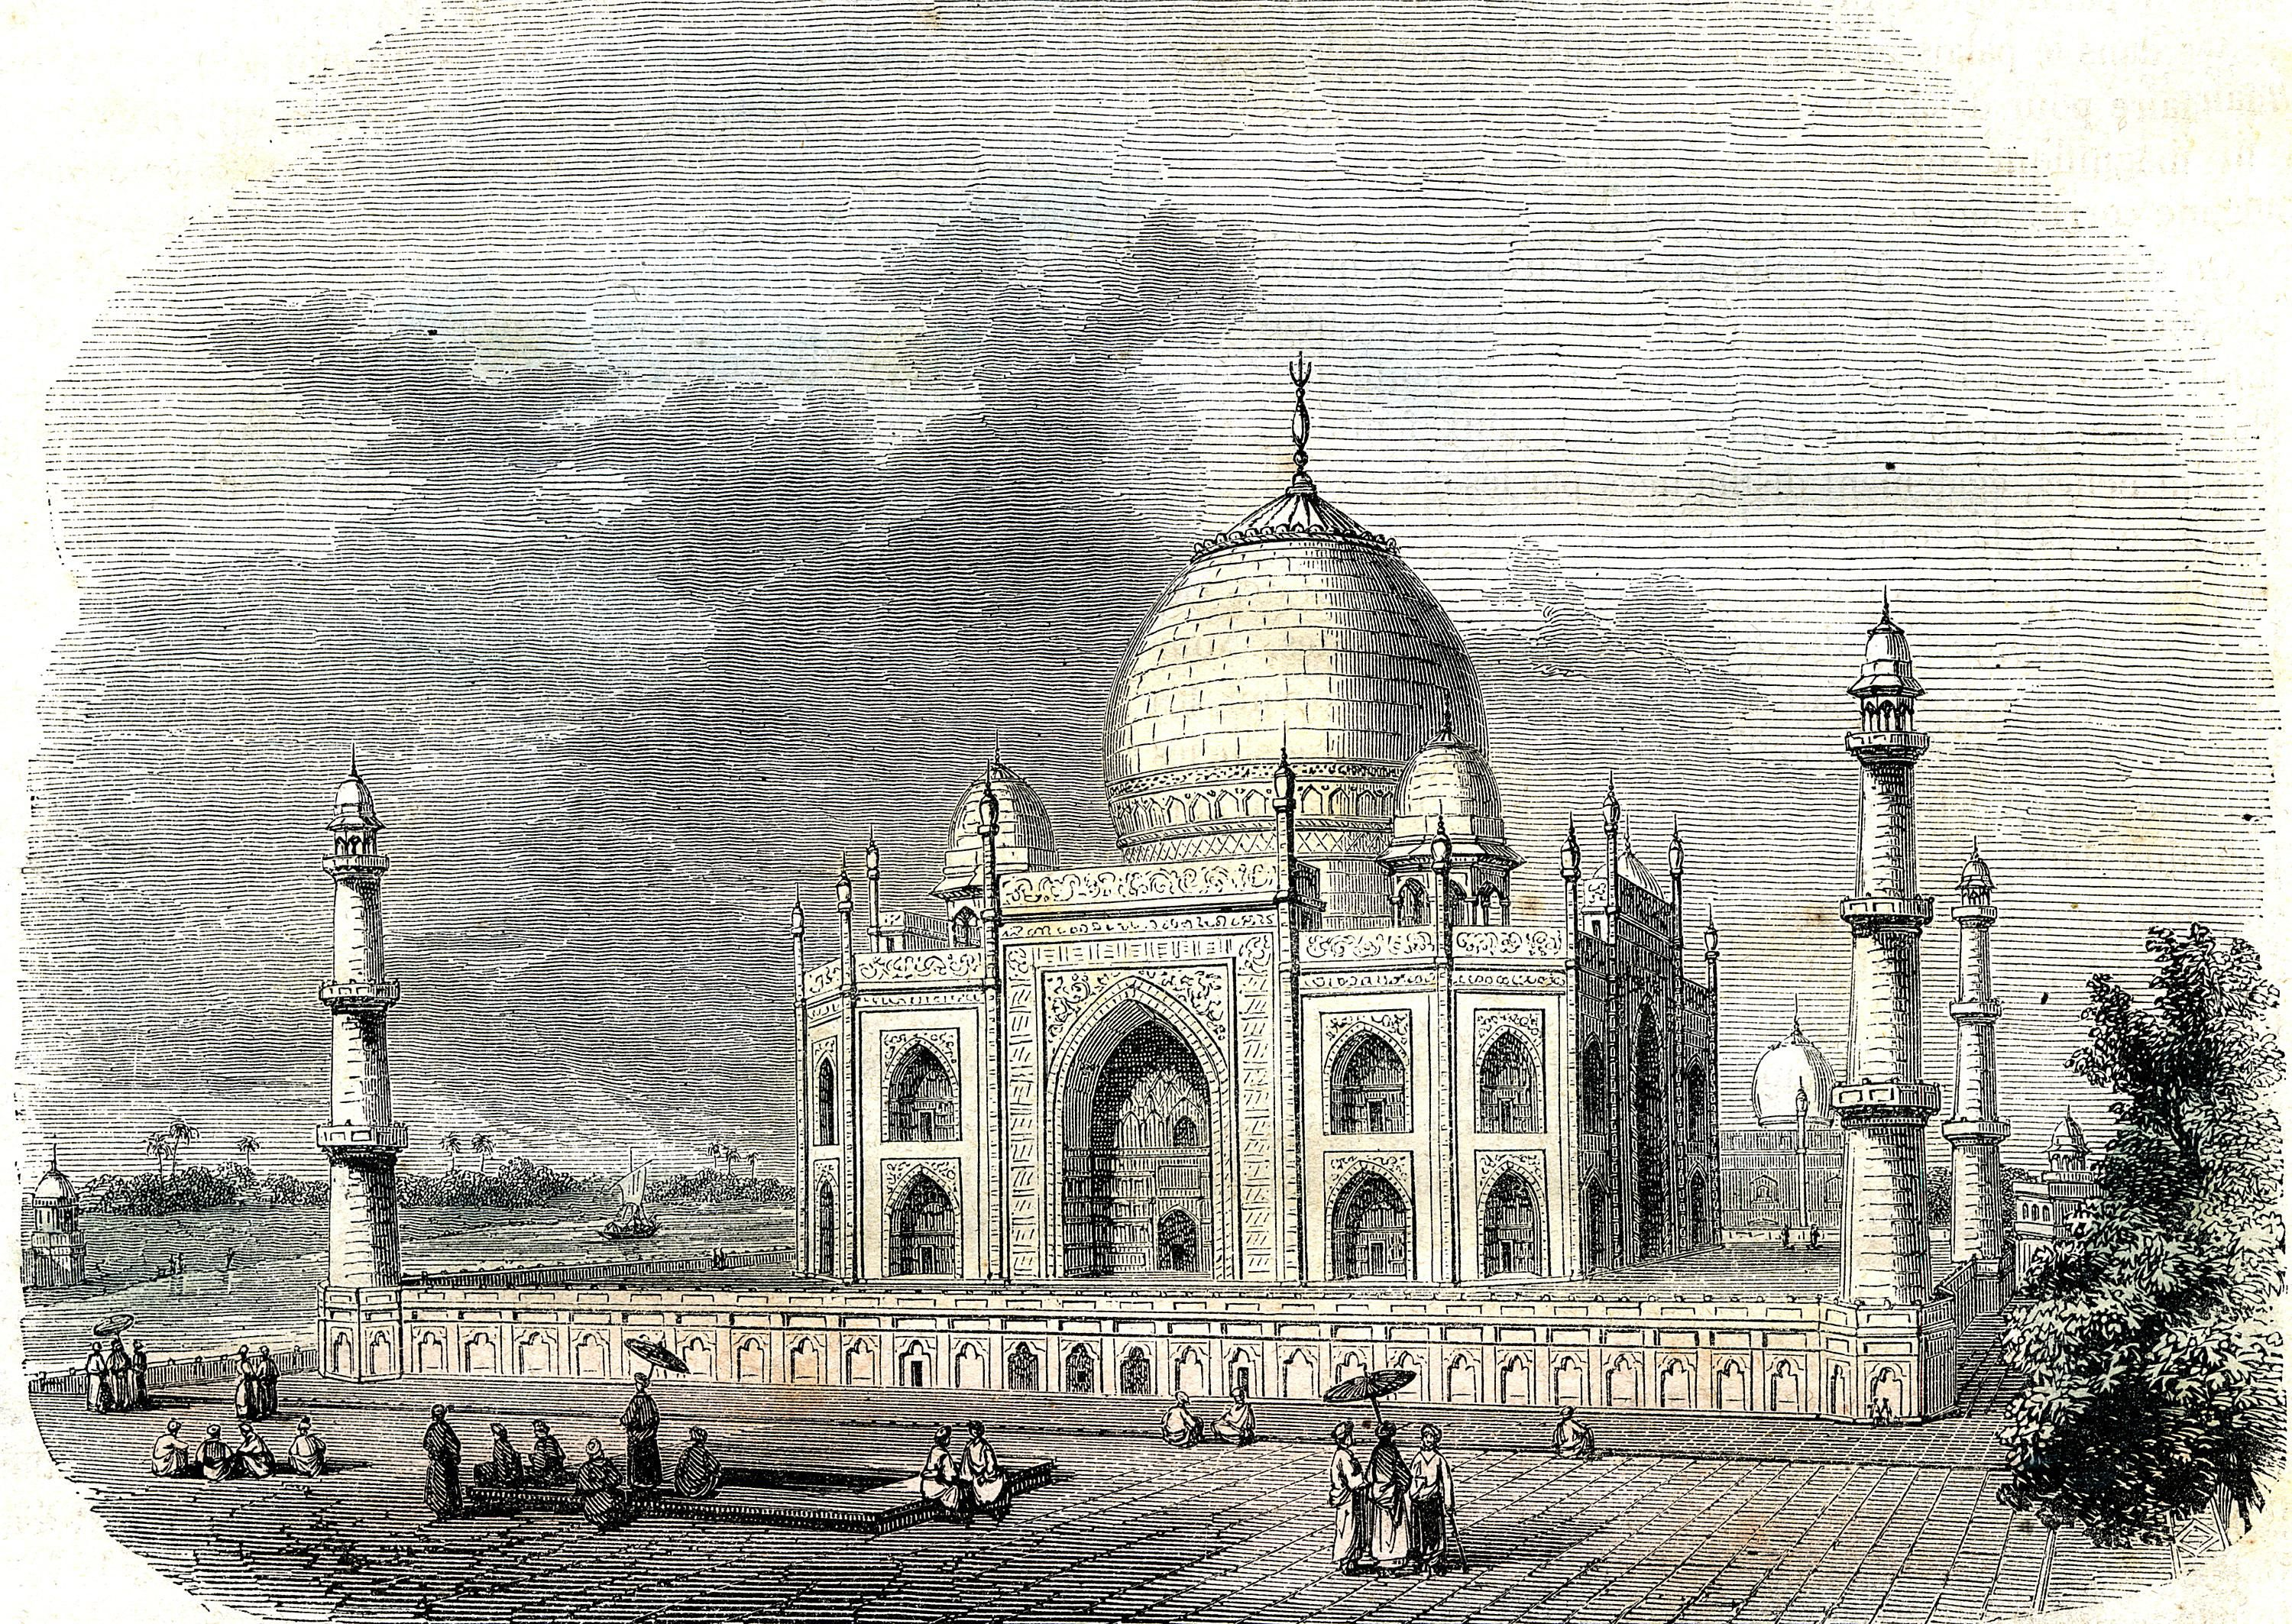 a timeline of india in the 1800s british raj